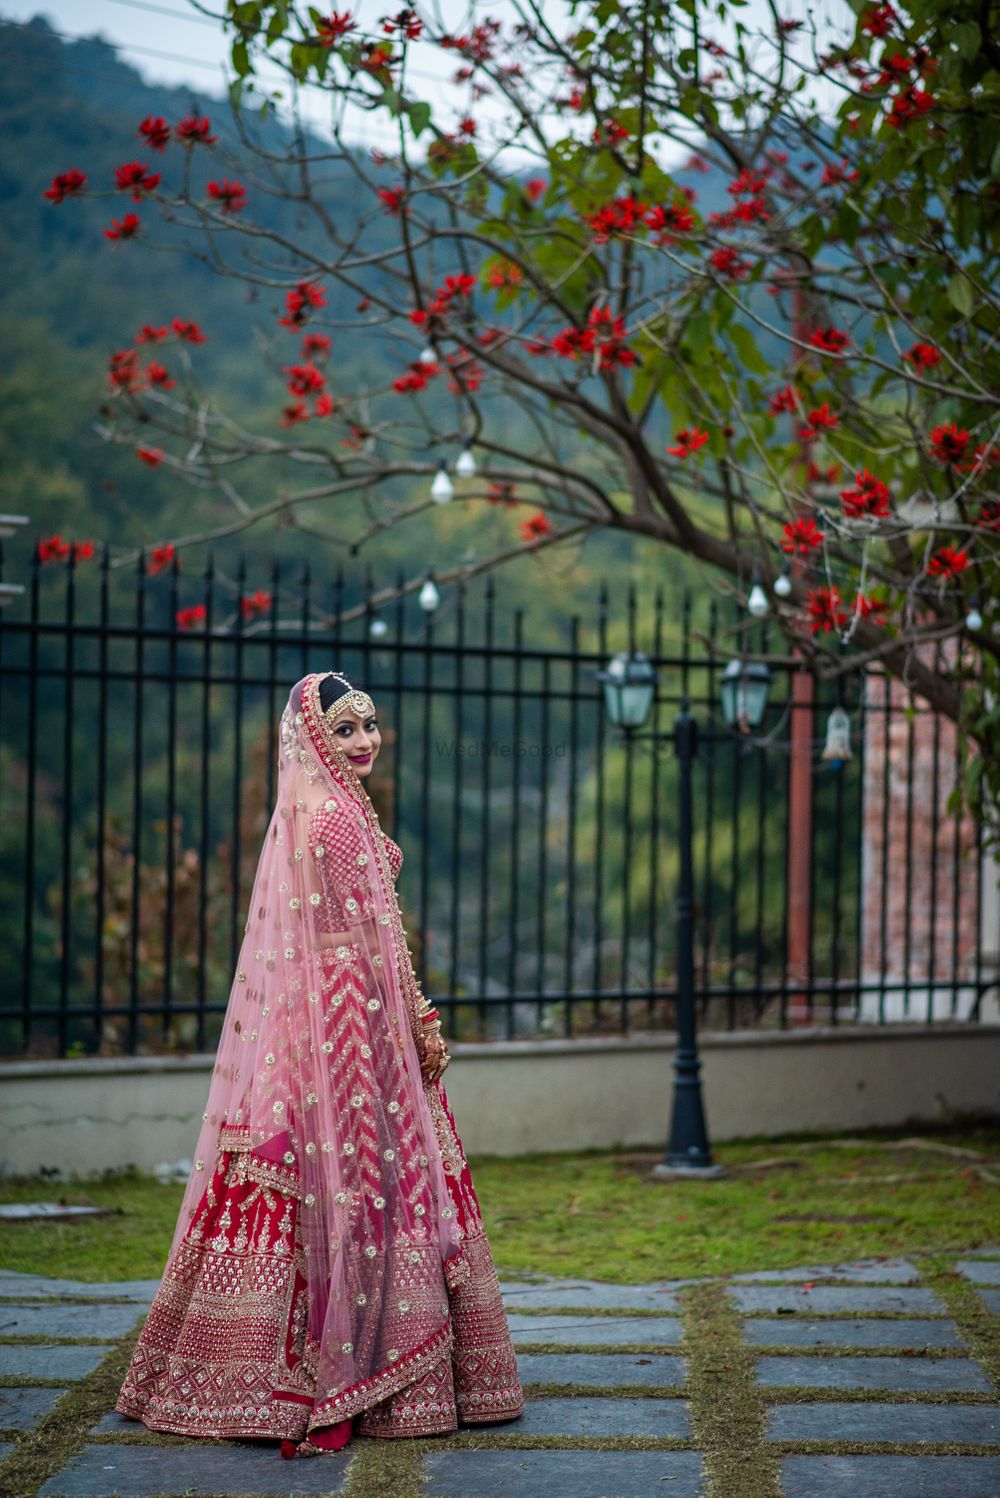 Photo of Red lehenga with contrasting pink dupatta on the head